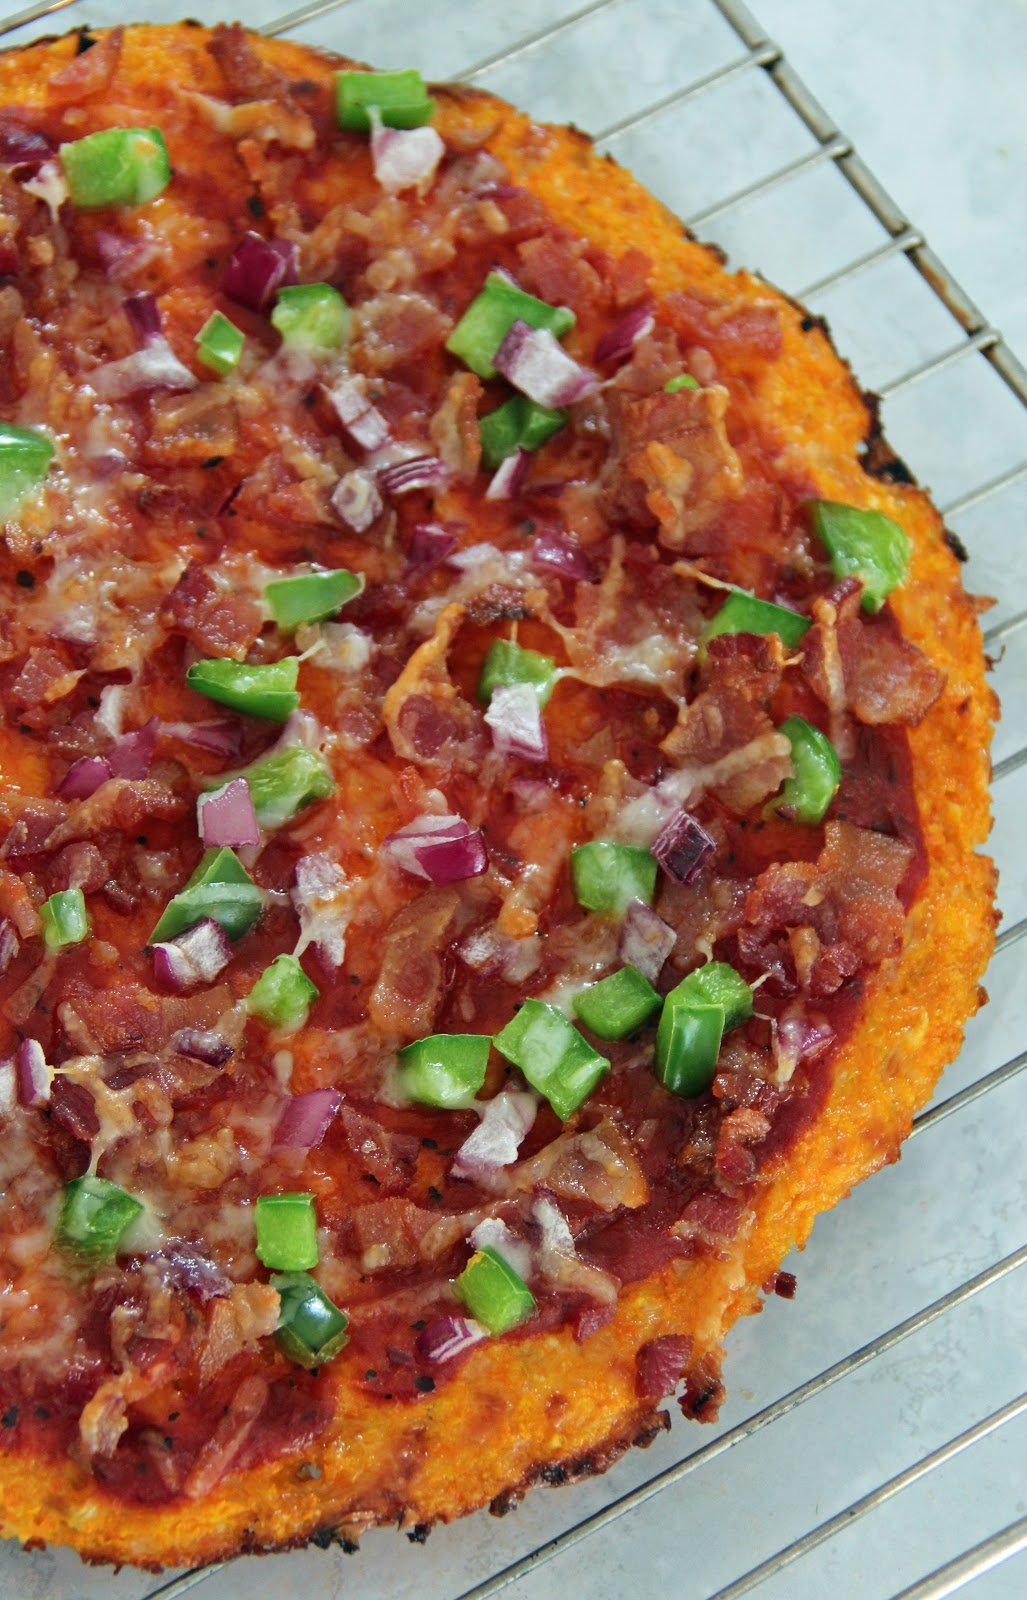 share at least one healthier Easter treat. This Carrot Crust Pizza ...